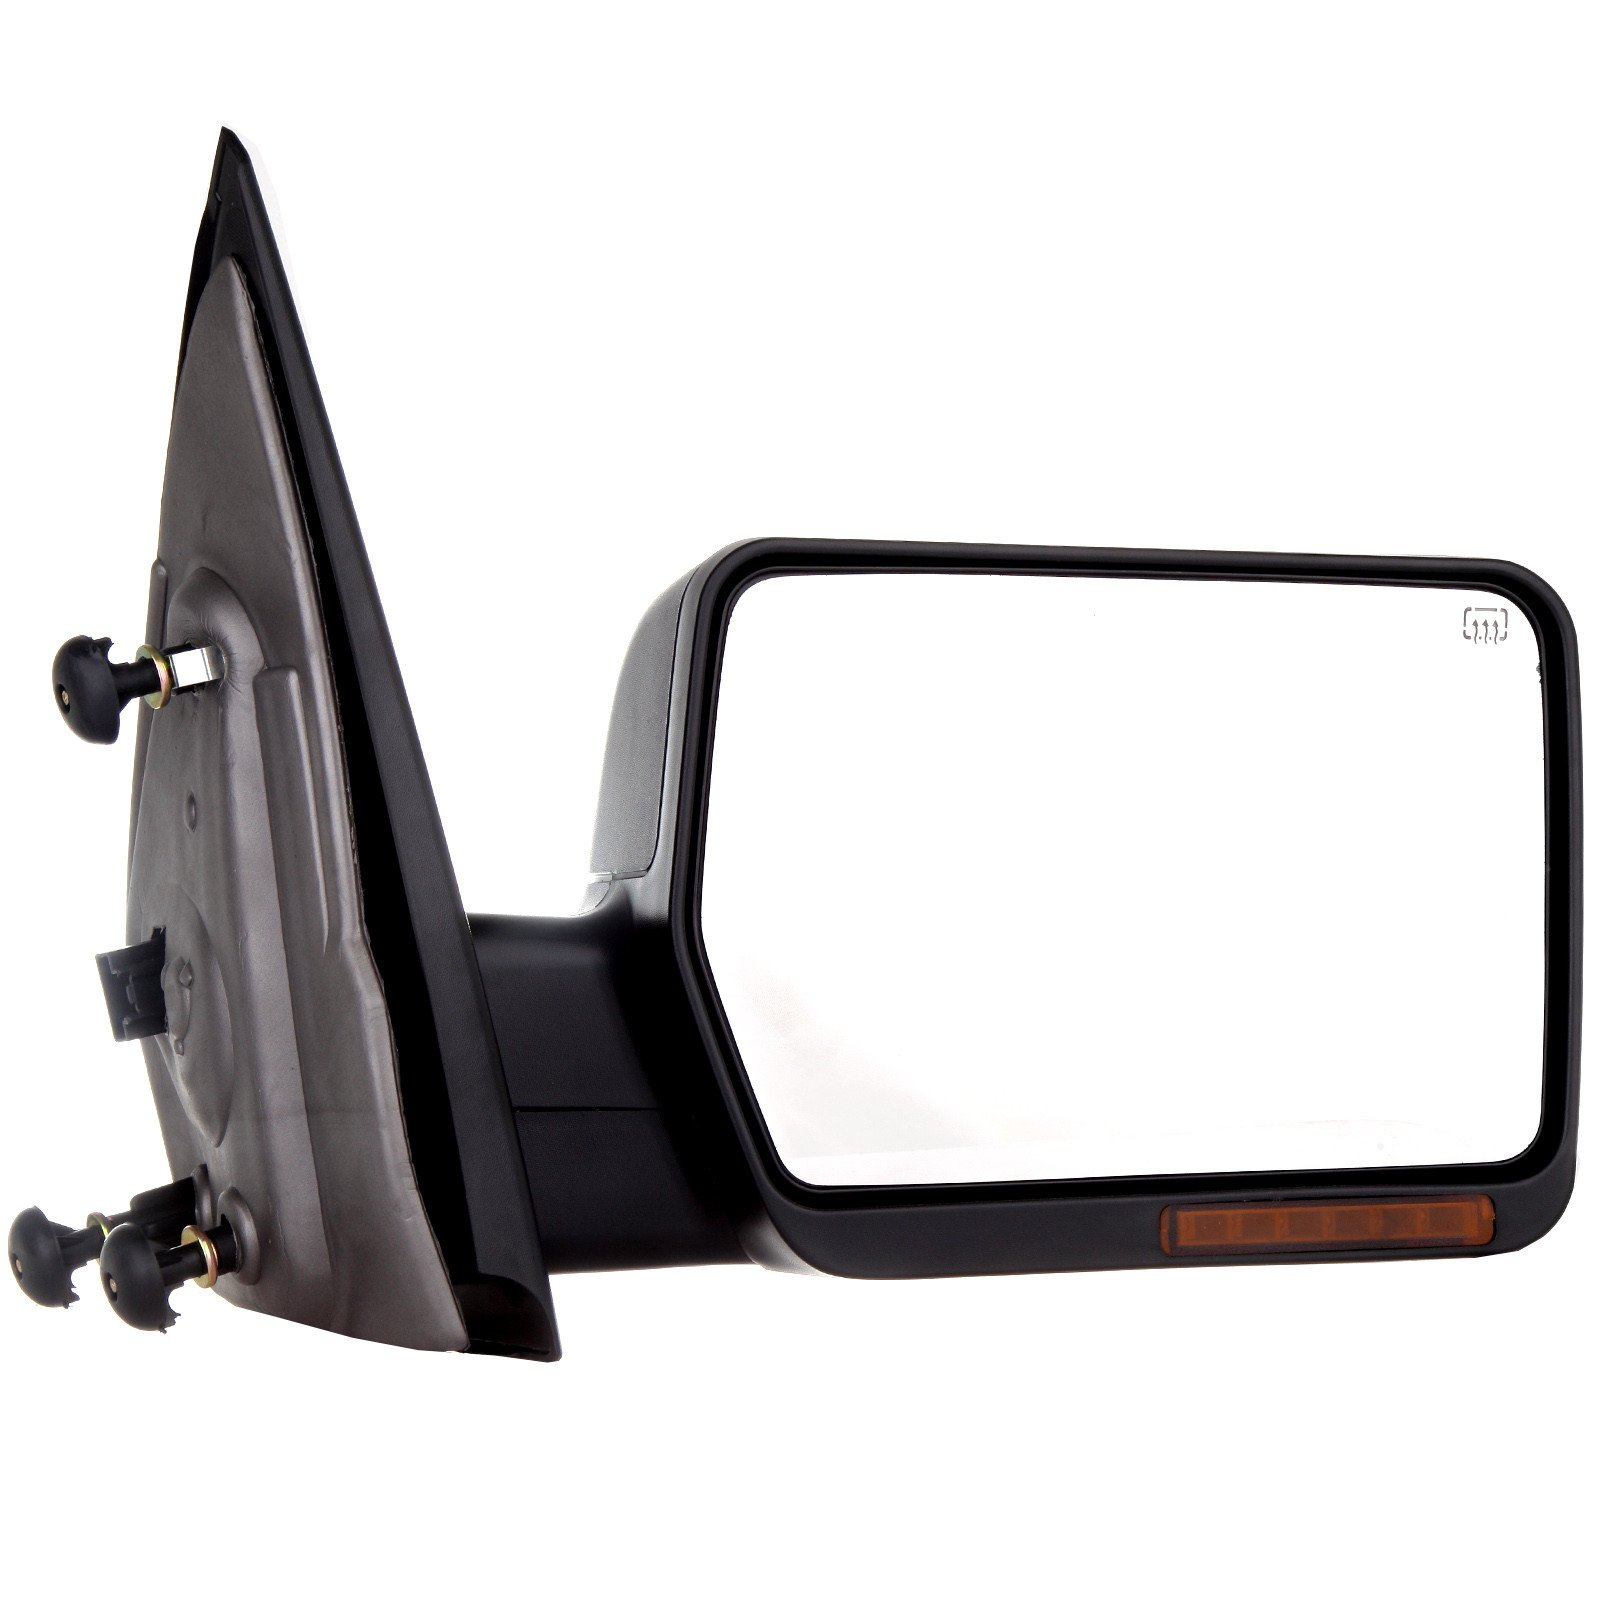 Towing Mirror For 2004-06 Ford F-150 Rear View Mirror Automotive Exterior Mirrors with Power Heated Front LED Signals (Passenger Side) by SCITOO (Image #2)